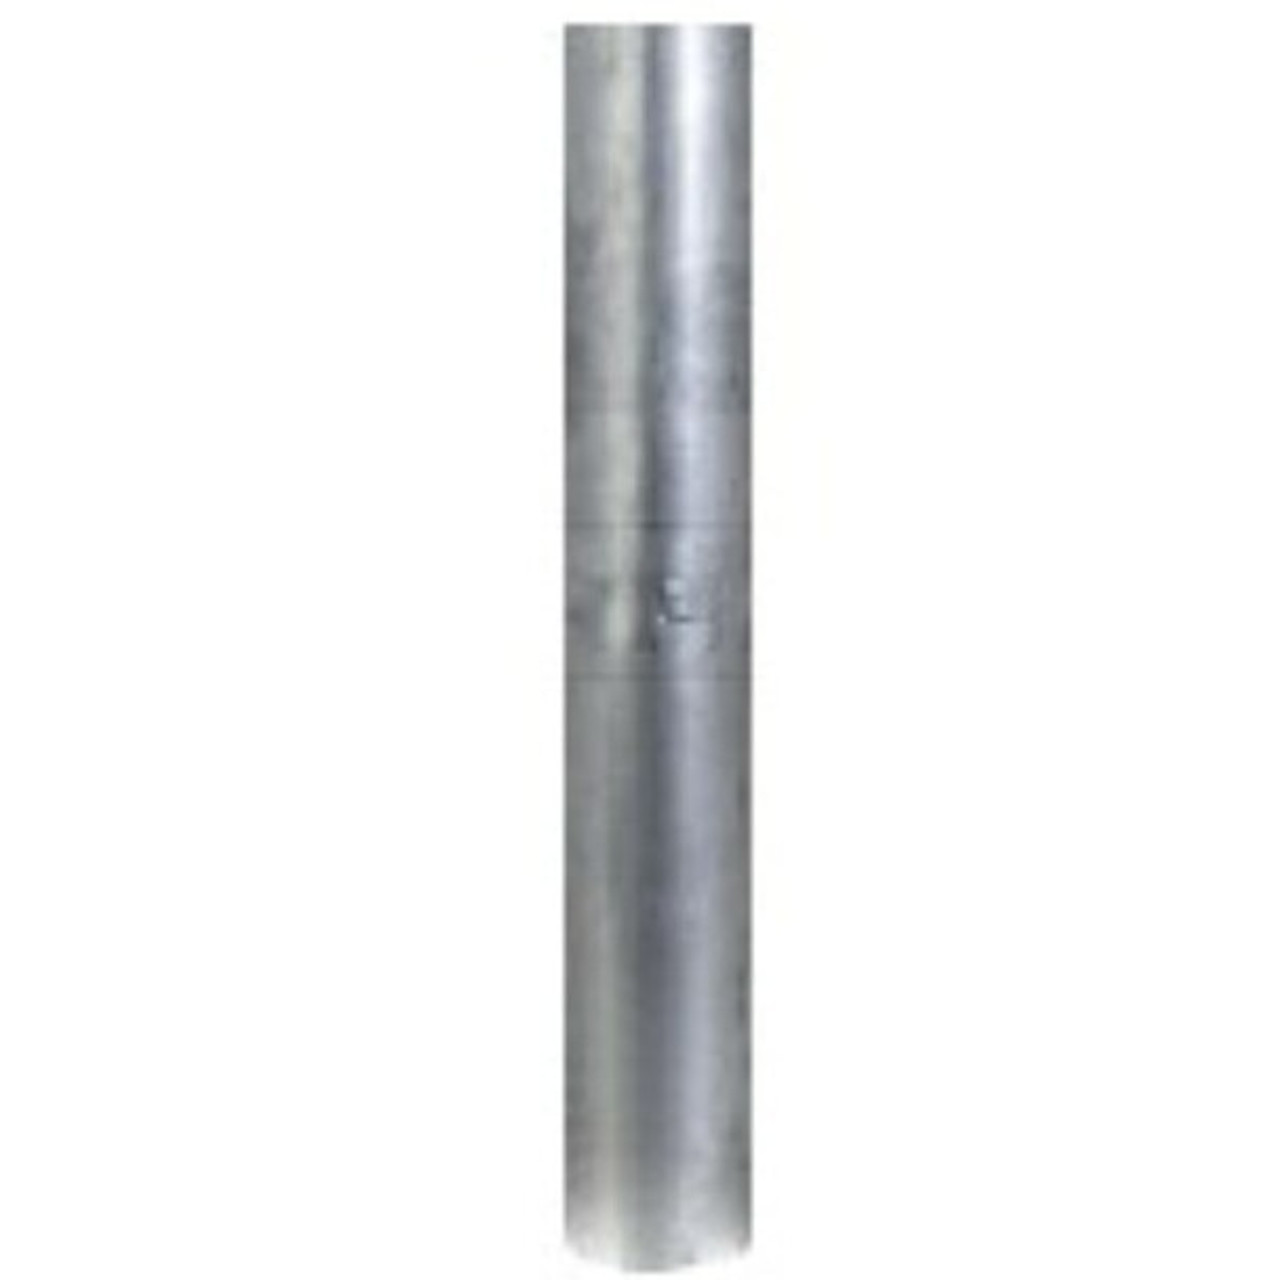 "2.5"" x 36"" Straight Exhaust Stack Pipe Aluminized OD Bottom Nelson 89200A"